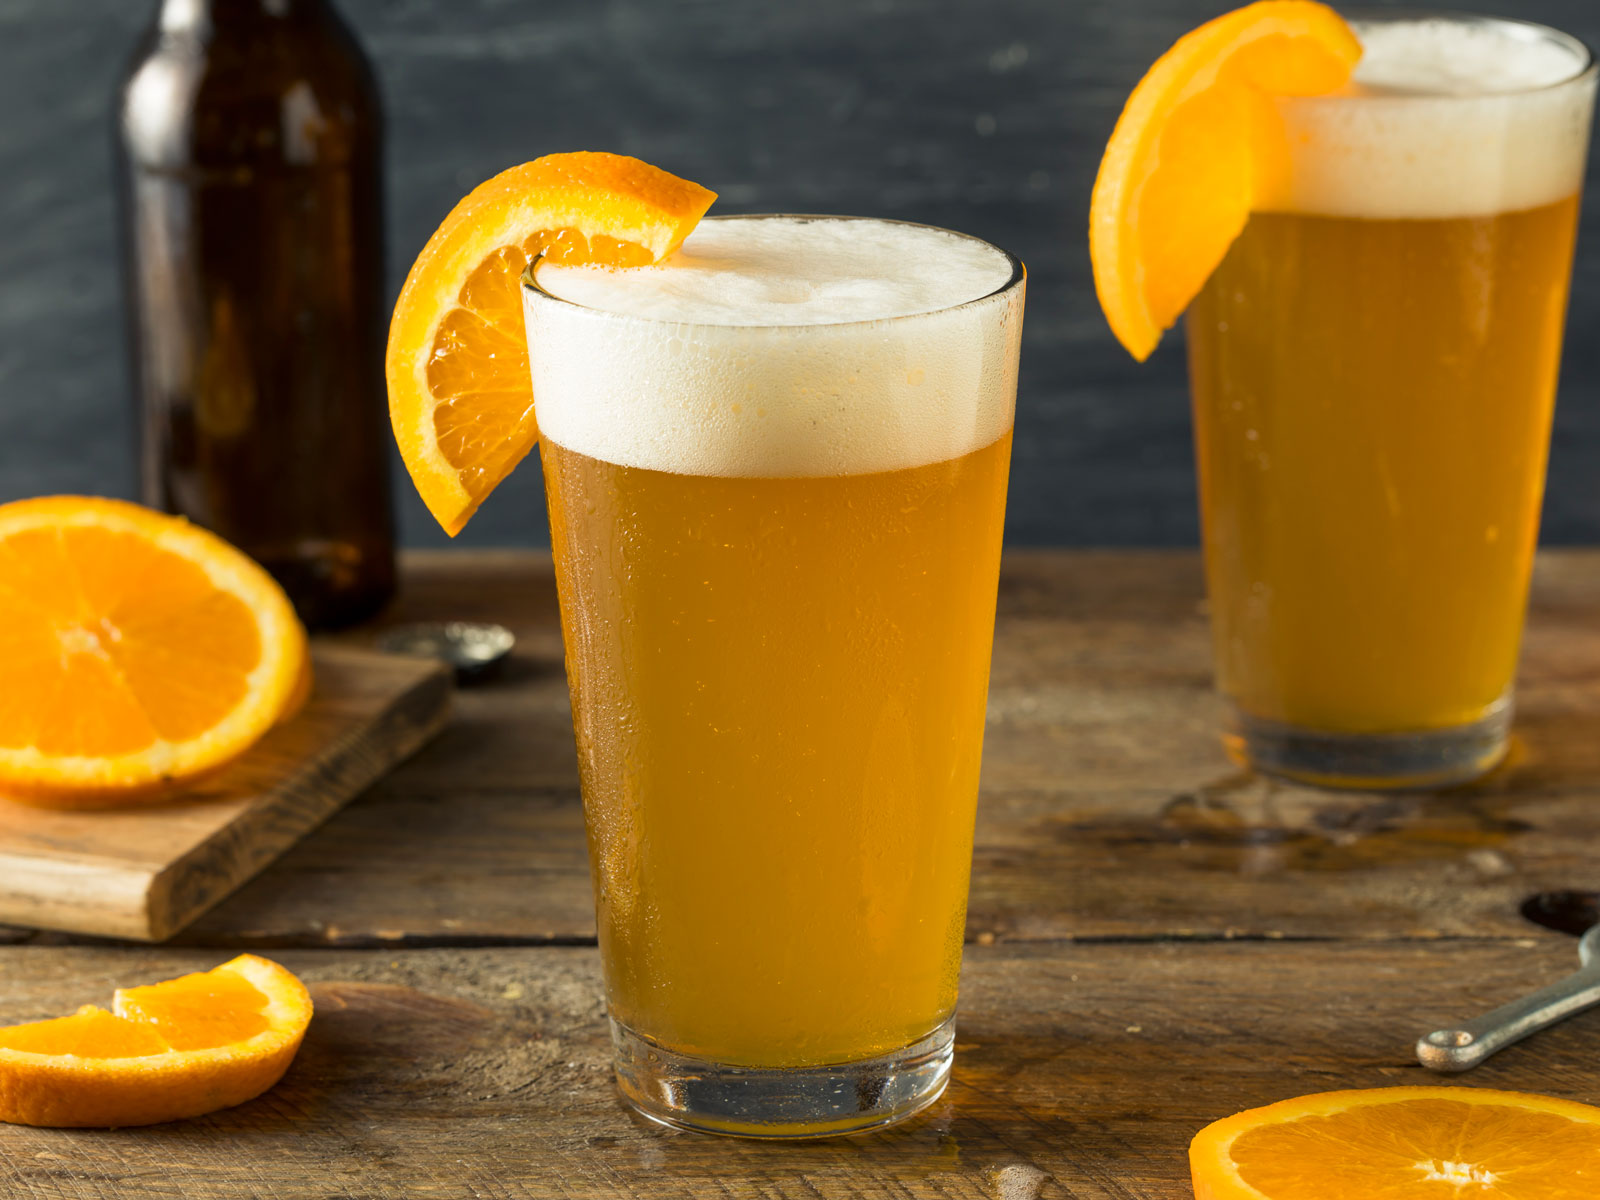 Blue Moon brewer to launch marijuana-infused 'beer' in Colorado in fall